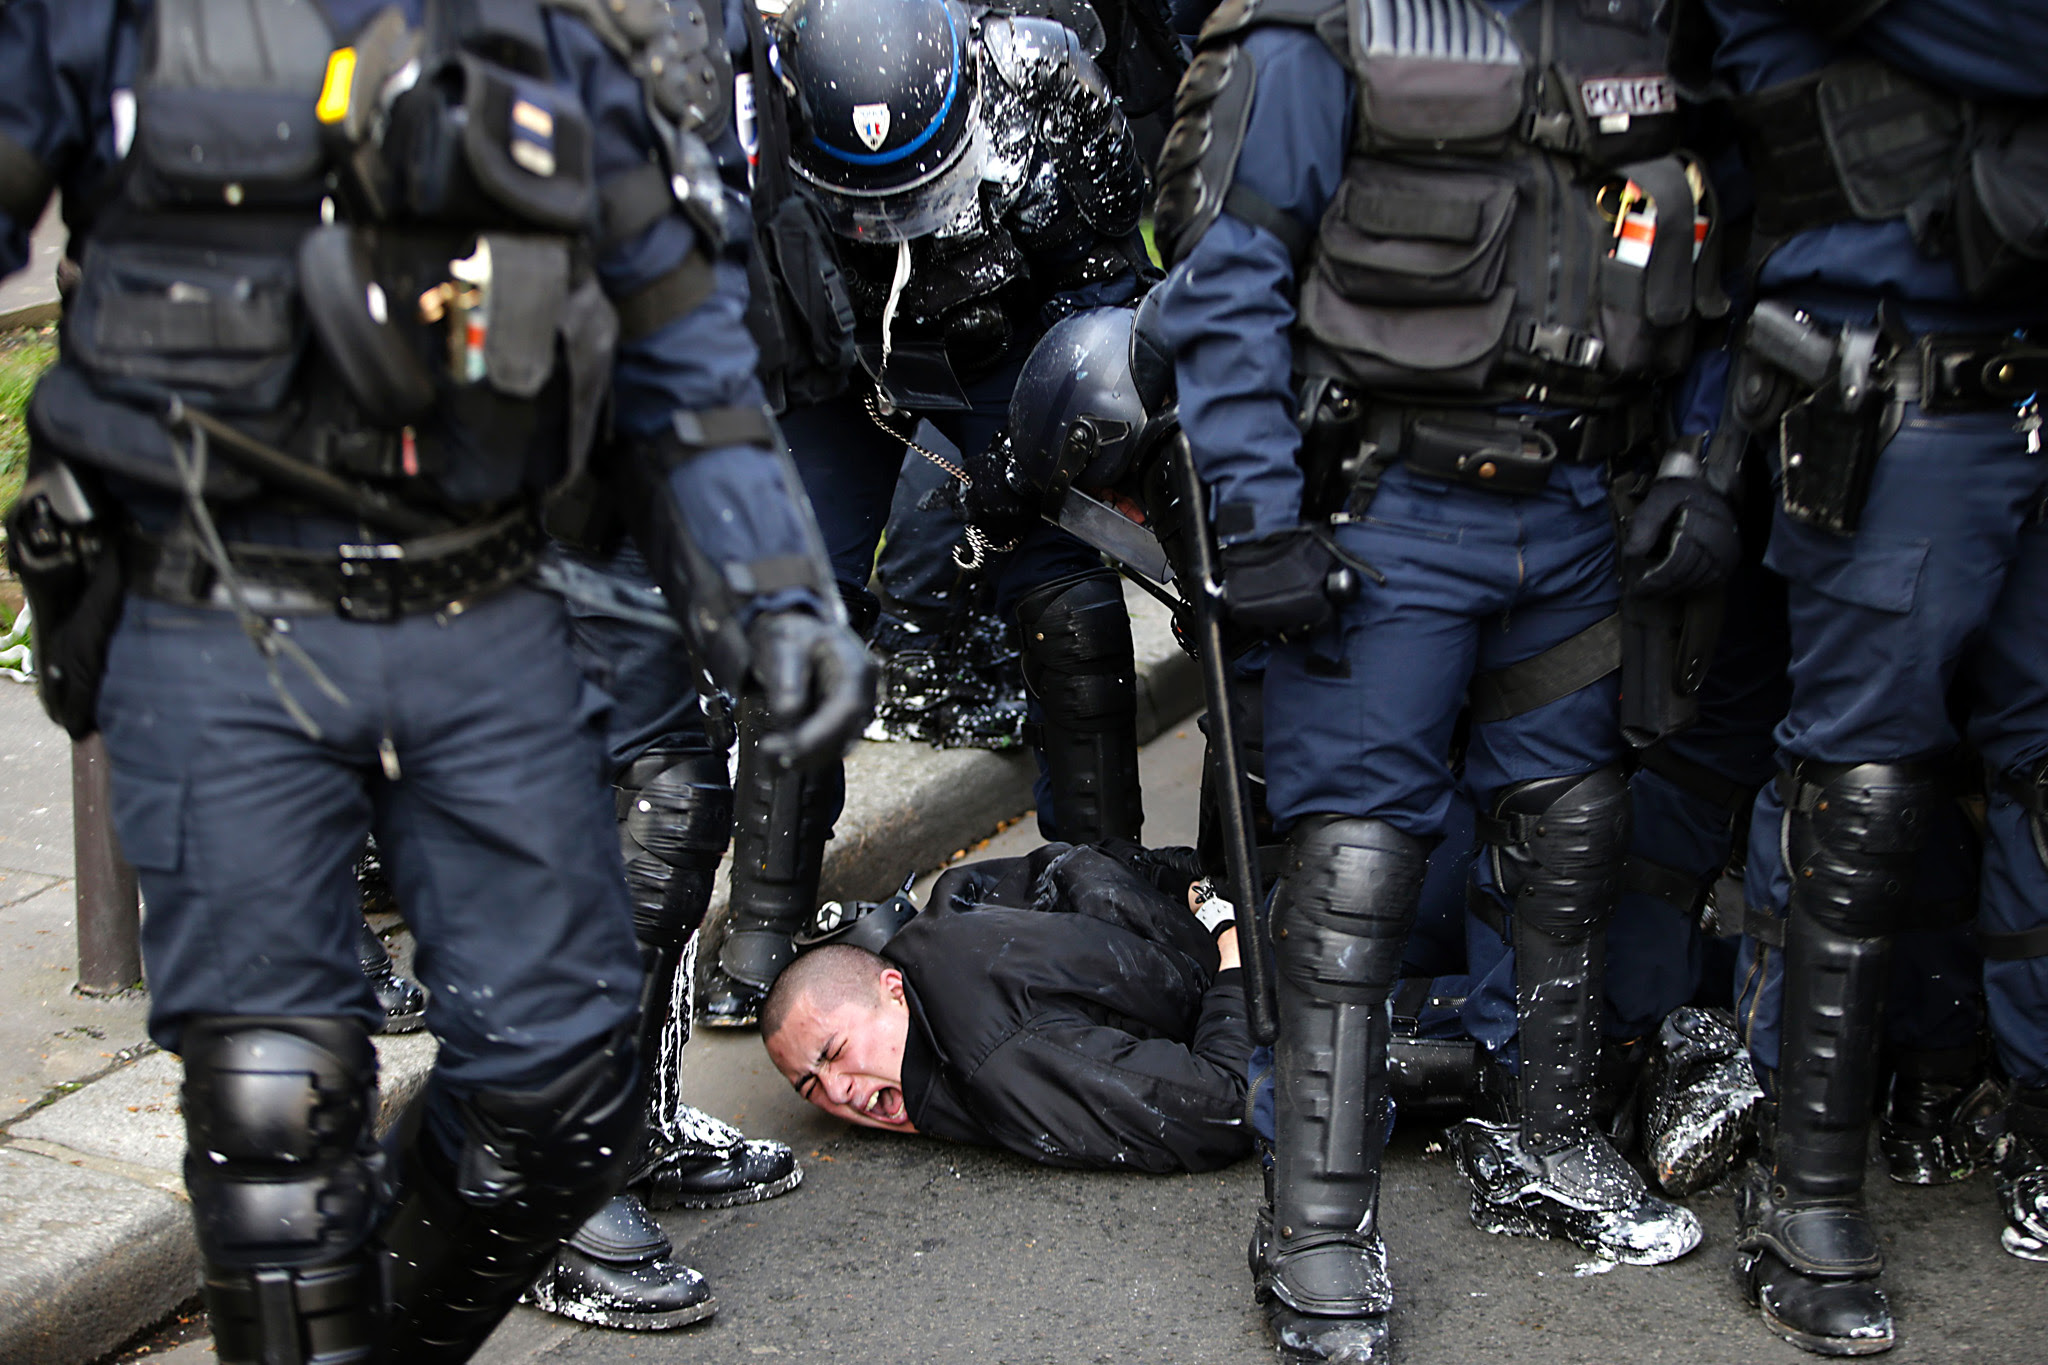 Anti-riot police officers arrest a man d...Anti-riot police officers arrest a man during clashes within a demonstration of high school students protesting against the government's planned labour reform, on April 5, 2016 in eastern Paris.  The Socialist government is desperate to push through reforms to France's controversial labour laws, billed as a last-gasp attempt to boost the flailing economy before next year's presidential election.  / AFP PHOTO / KENZO TRIBOUILLARDKENZO TRIBOUILLARD/AFP/Getty Images